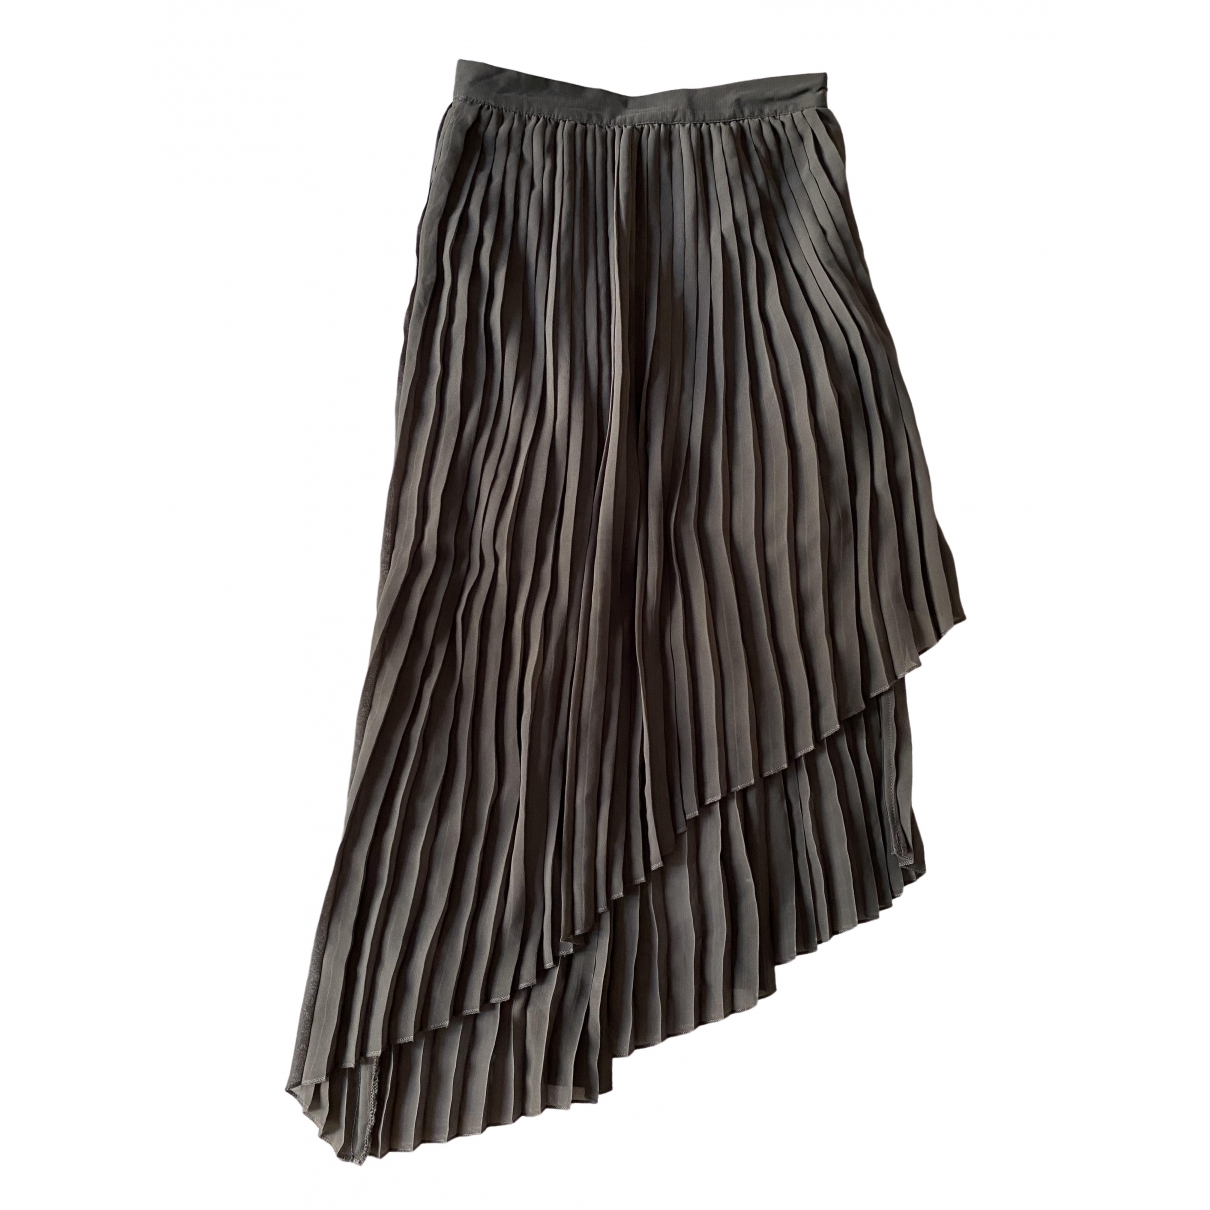 Zara \N Grey Cotton skirt for Women S International